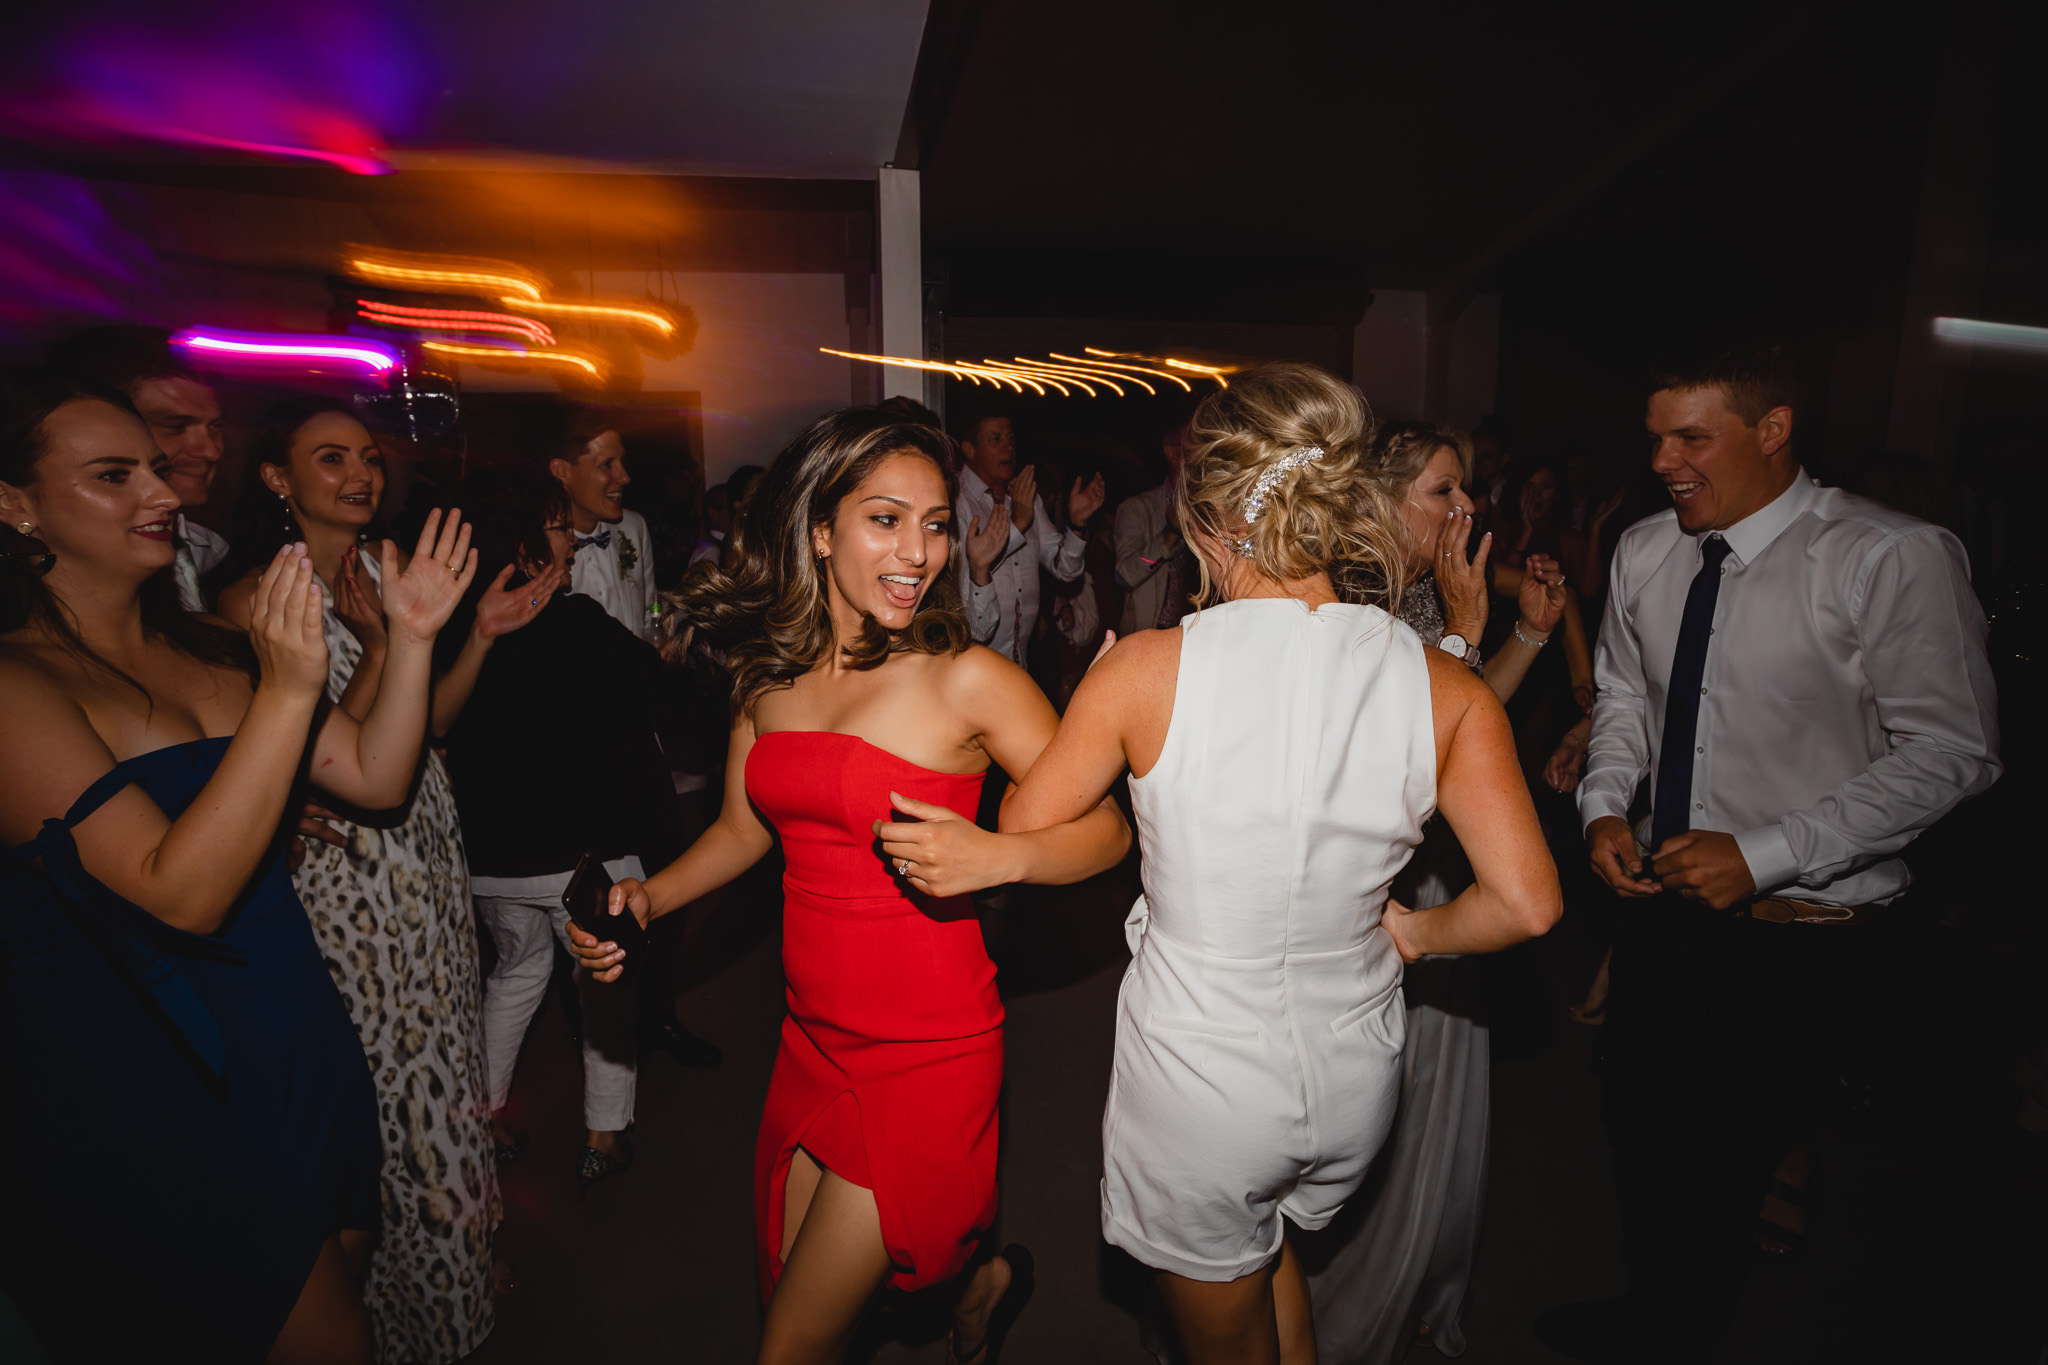 Girl in red dress dances with bride at wedding reception with light streaks in background